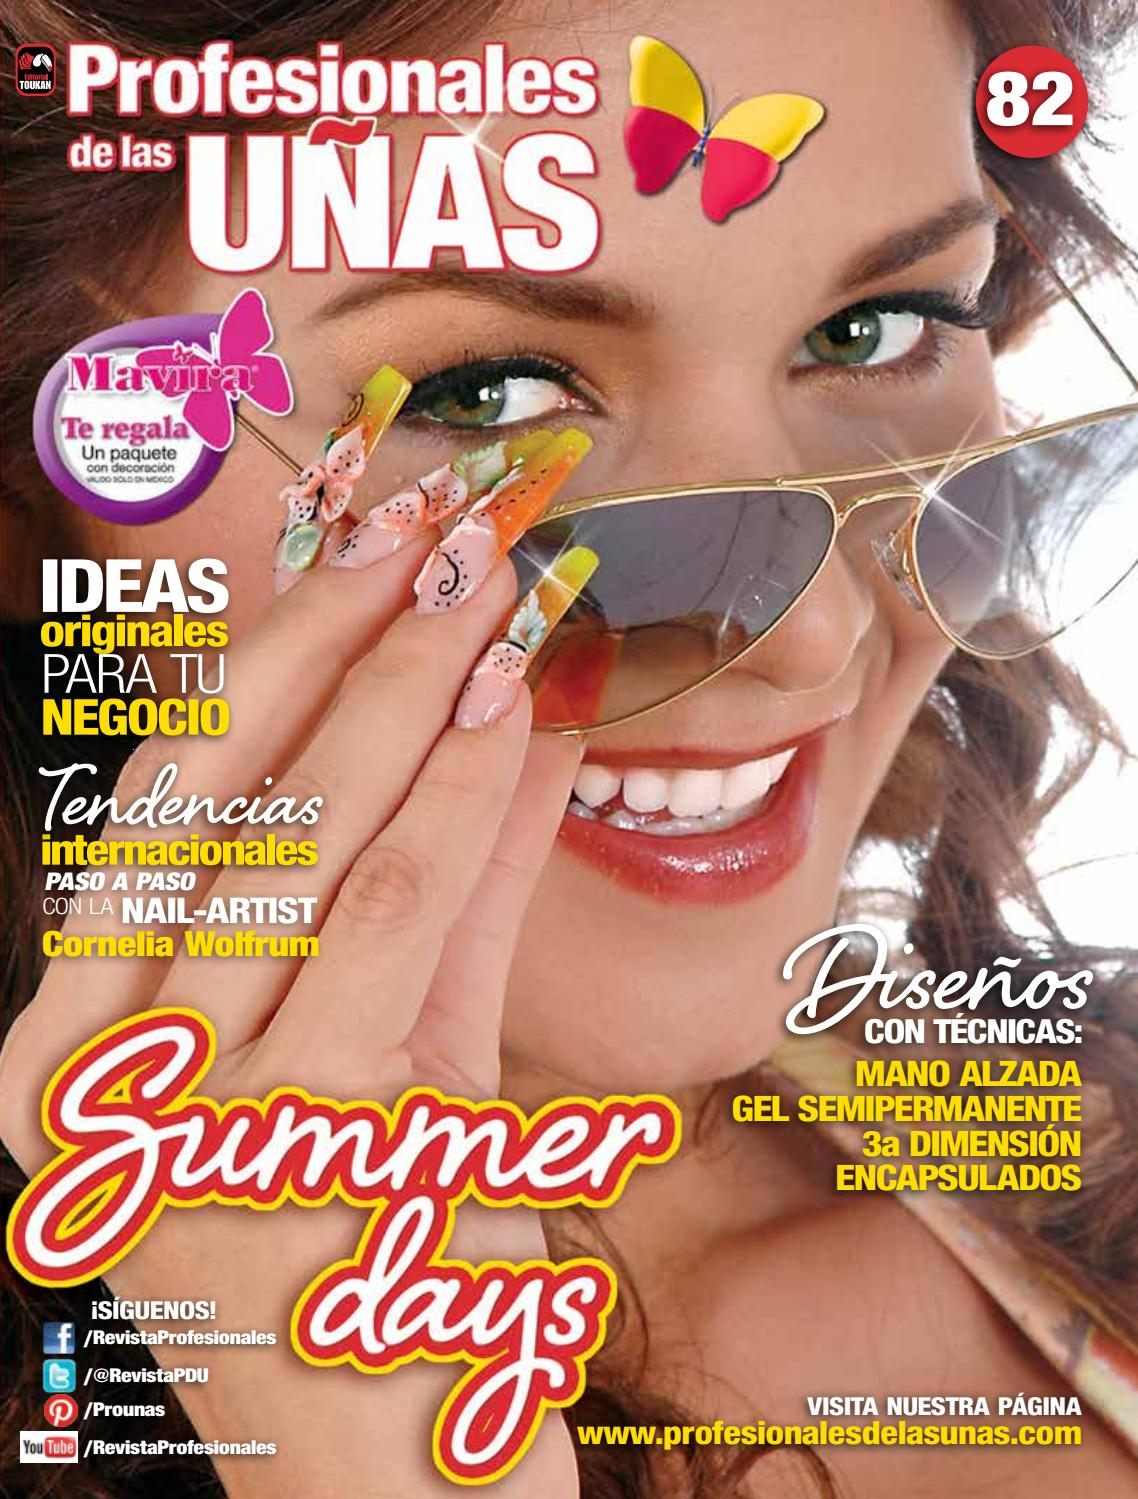 Profesionales de las uñas No. 82 by Editorial Toukan - issuu